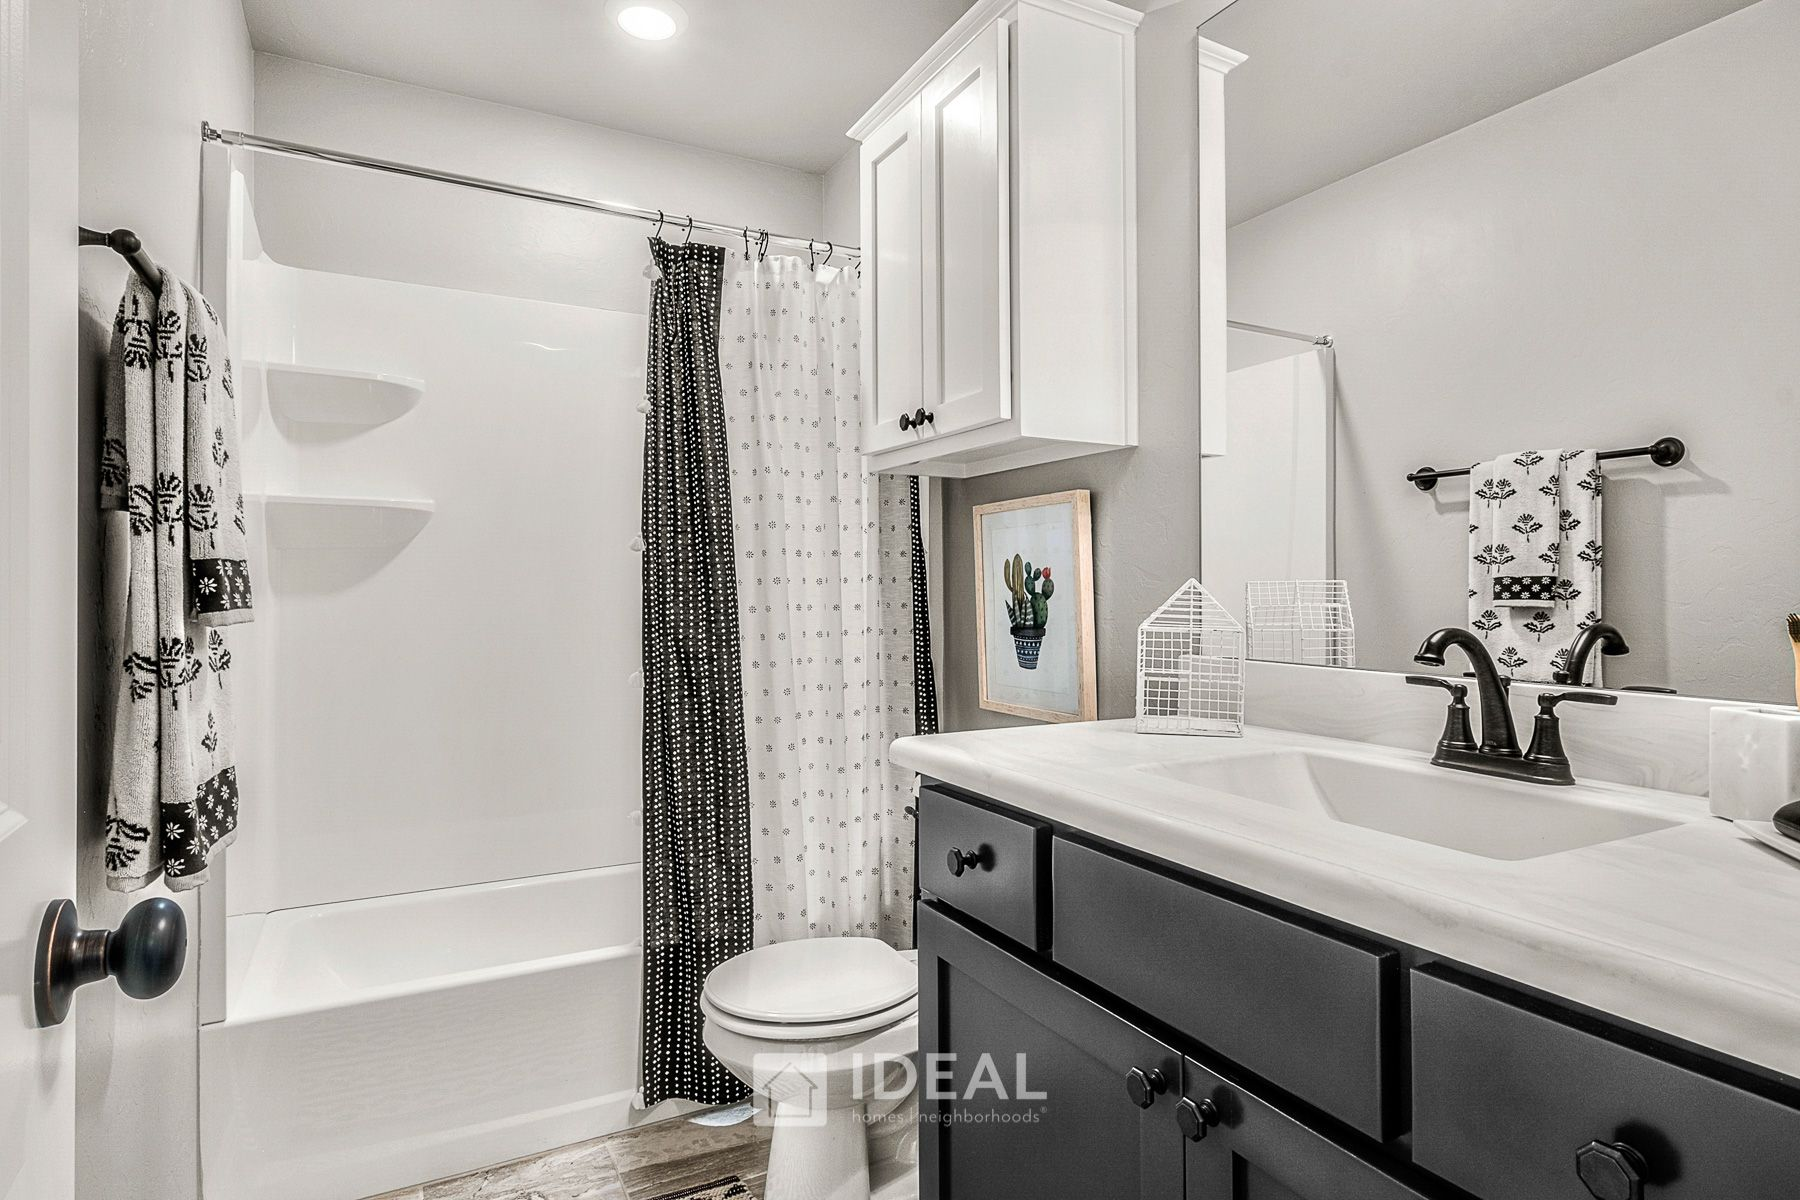 Bathroom featured in the Dawson By Ideal Homes in Oklahoma City, OK